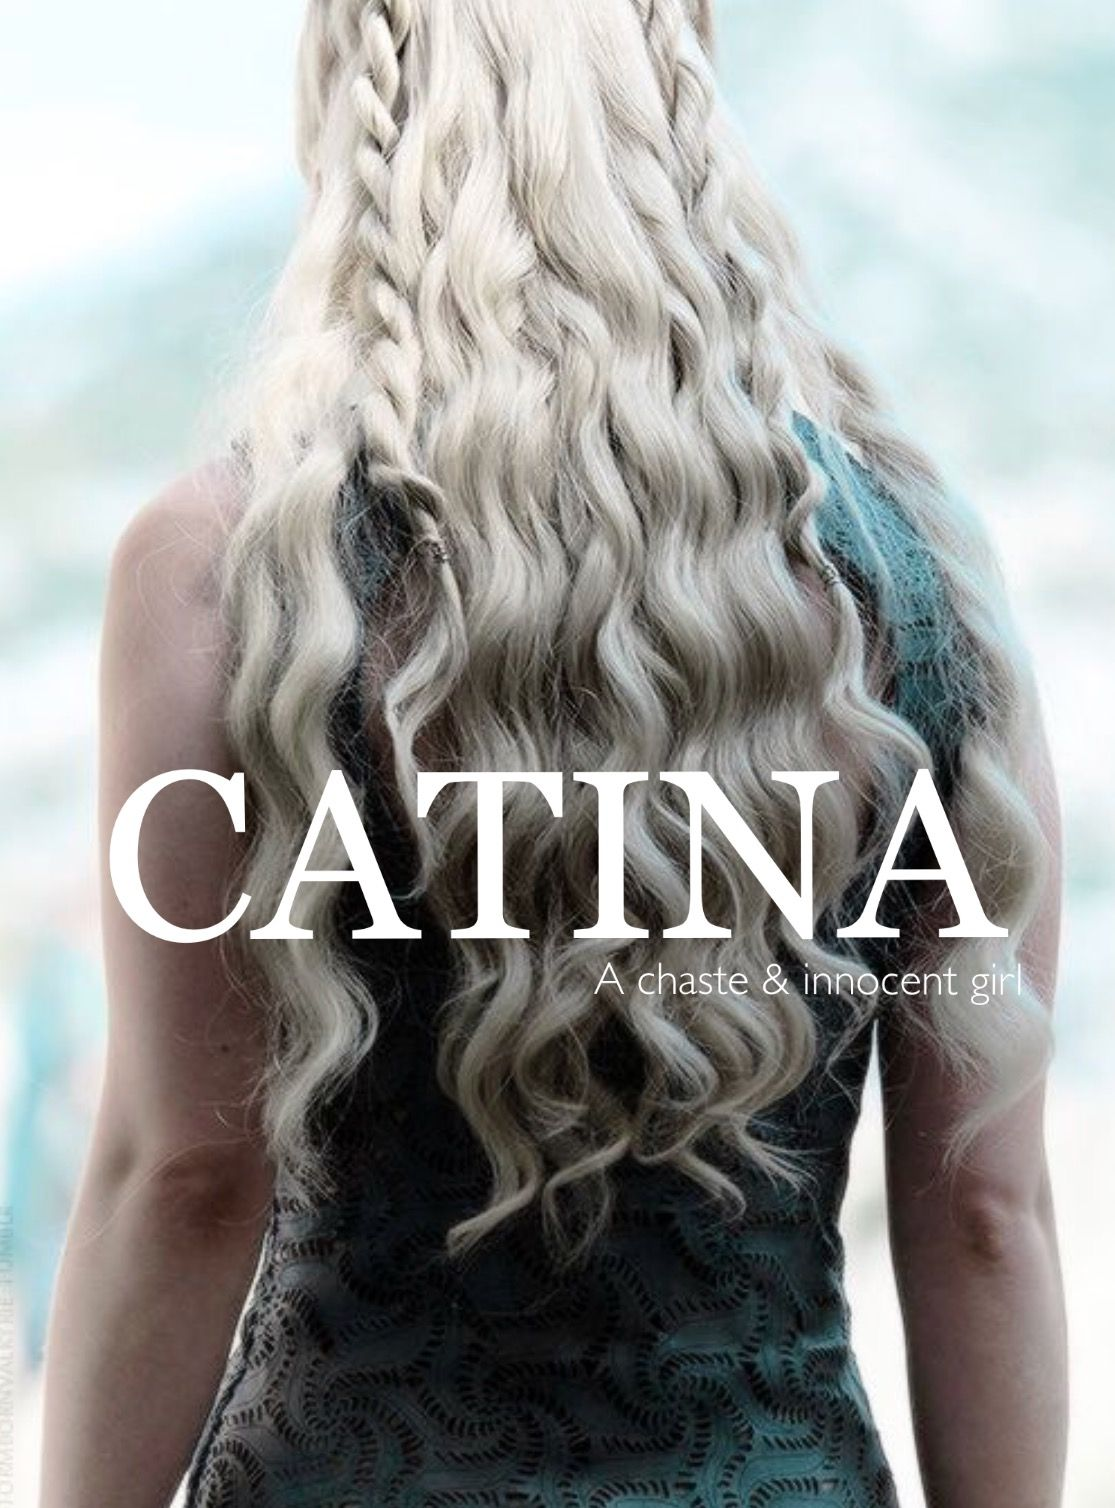 Catina, meaning chaste & innocent girl, Romanian names, C